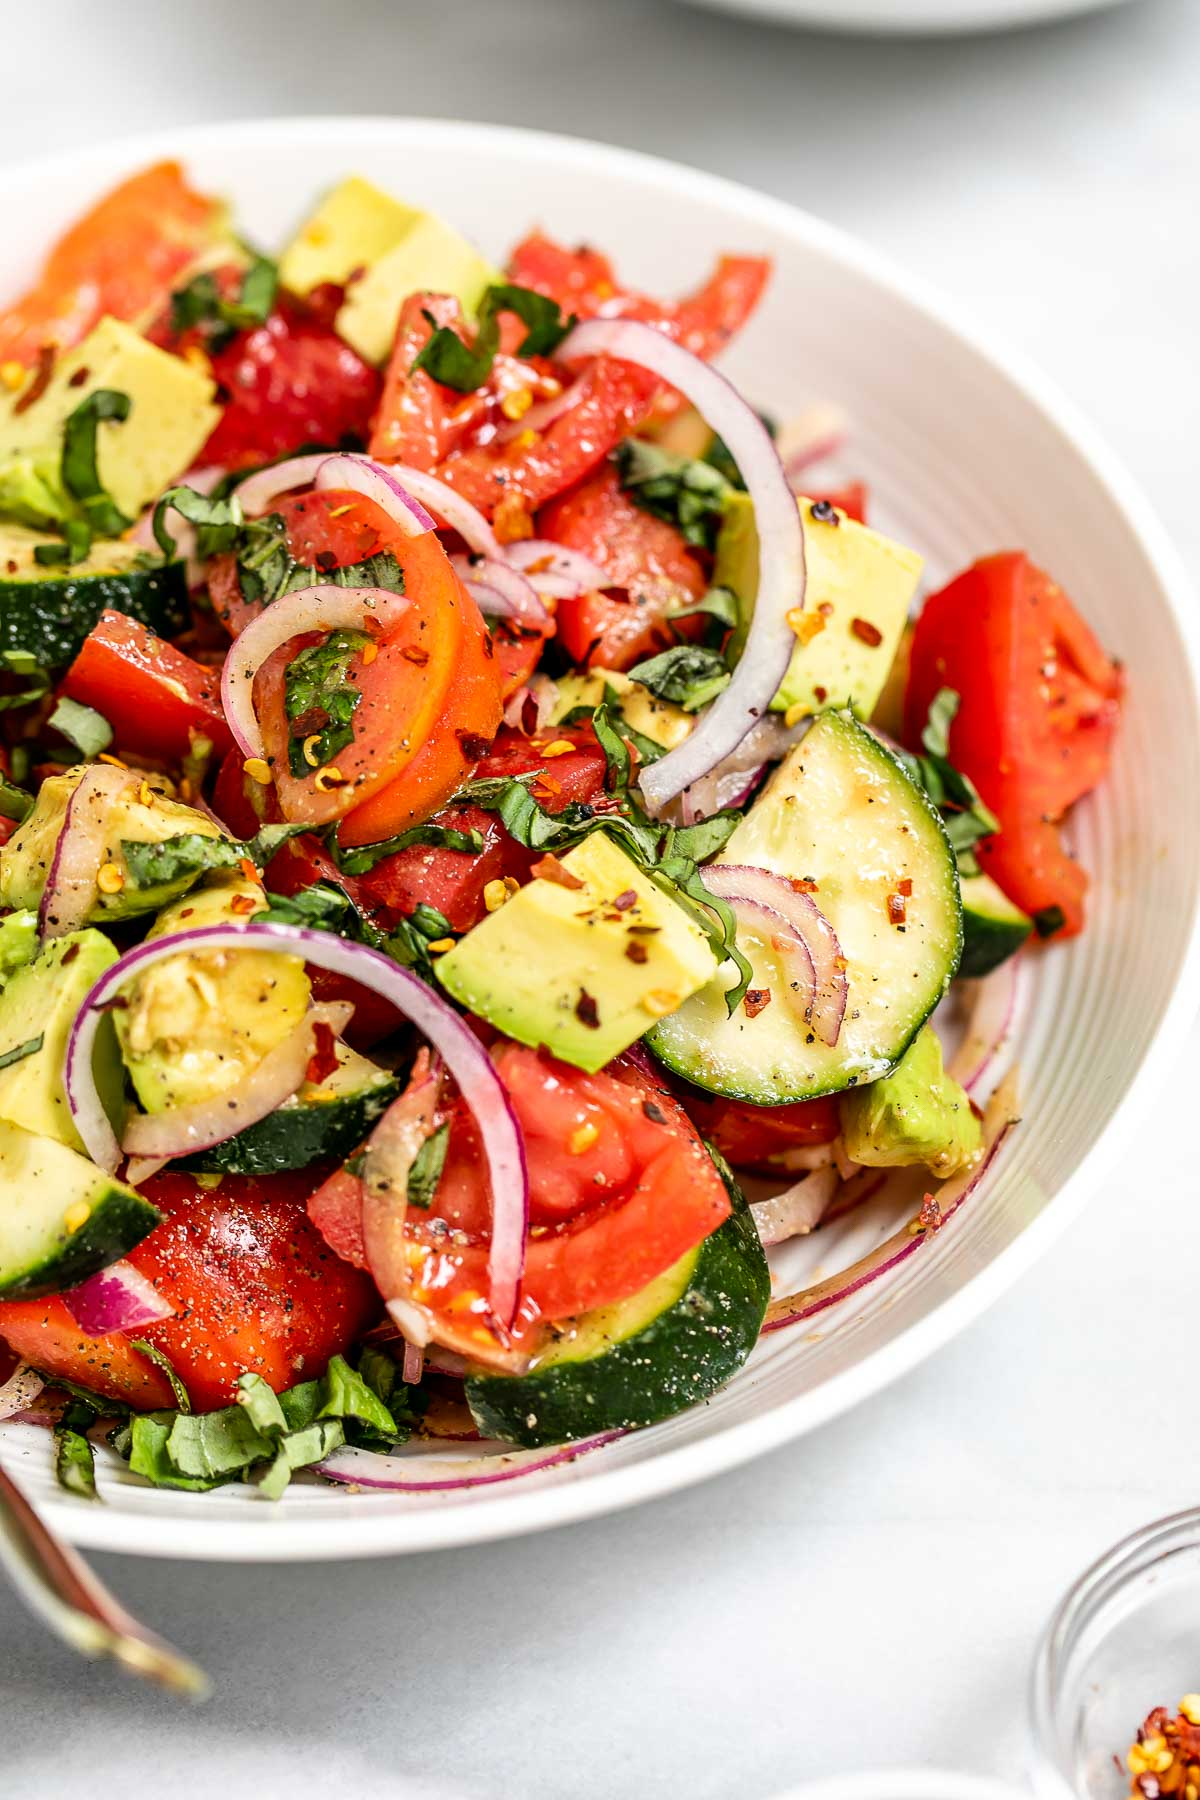 Angled view of the salad with avocado and basil.